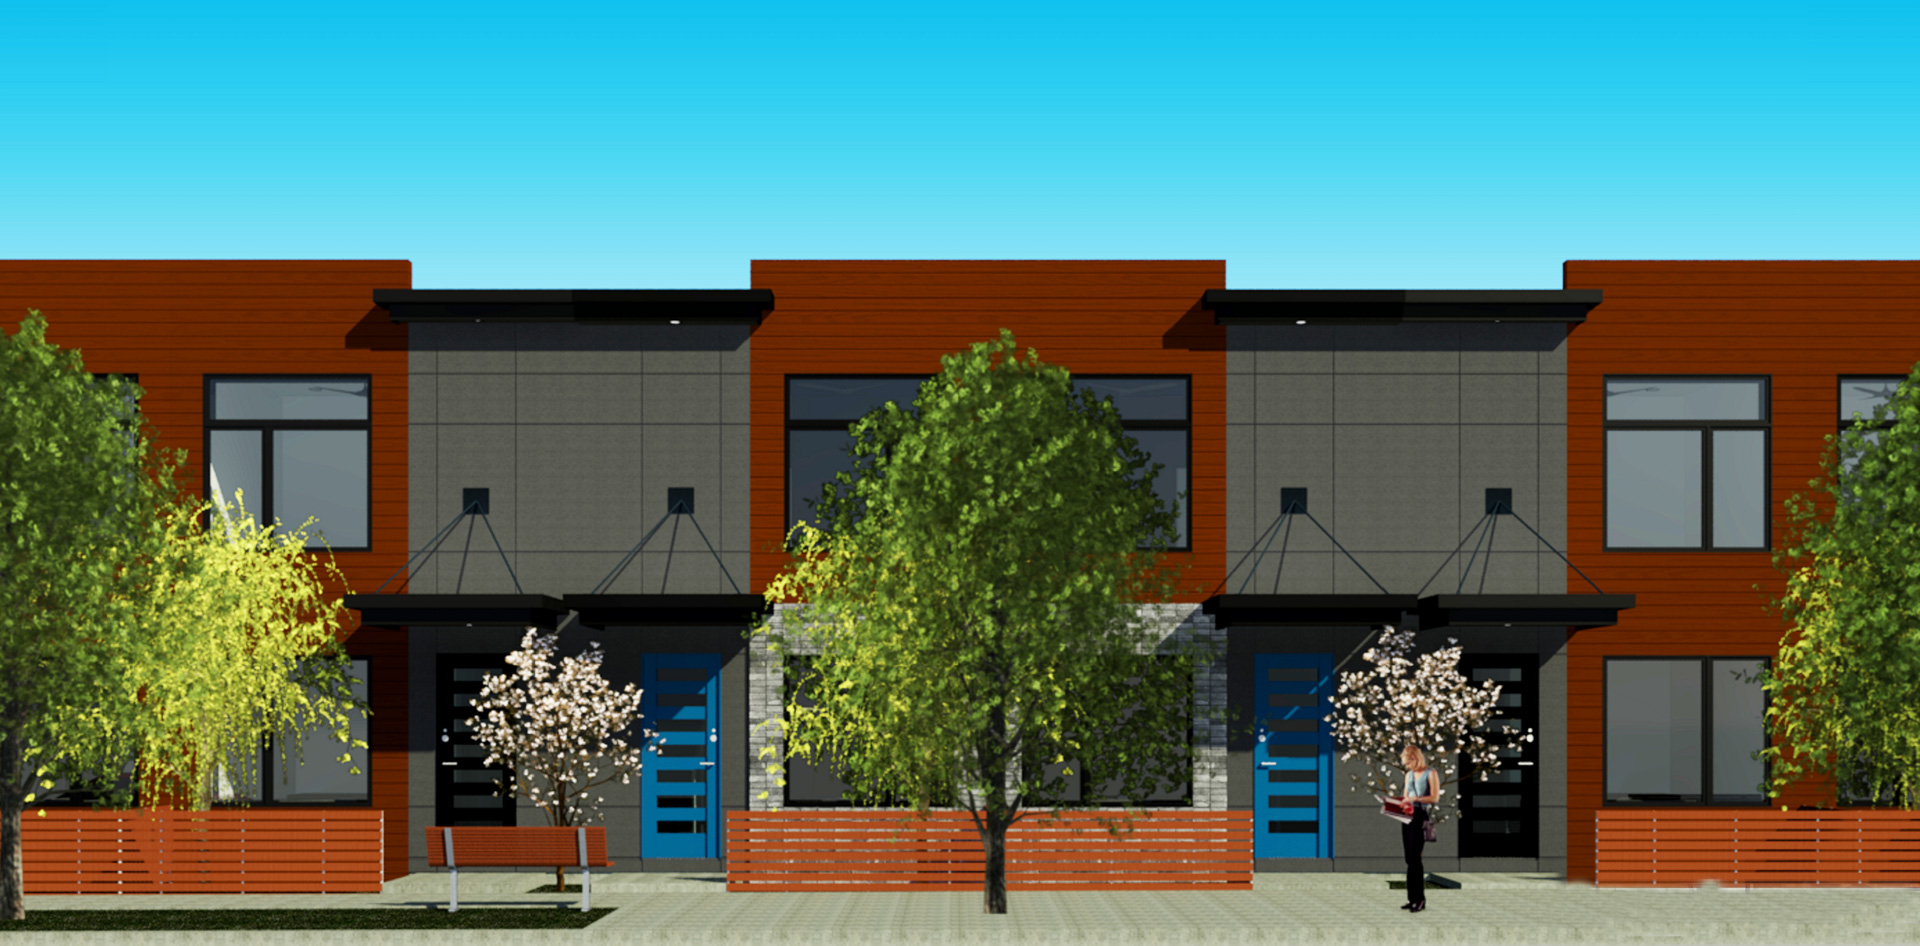 High Street Townhomes - Front Canopies - Mill Street Elevation